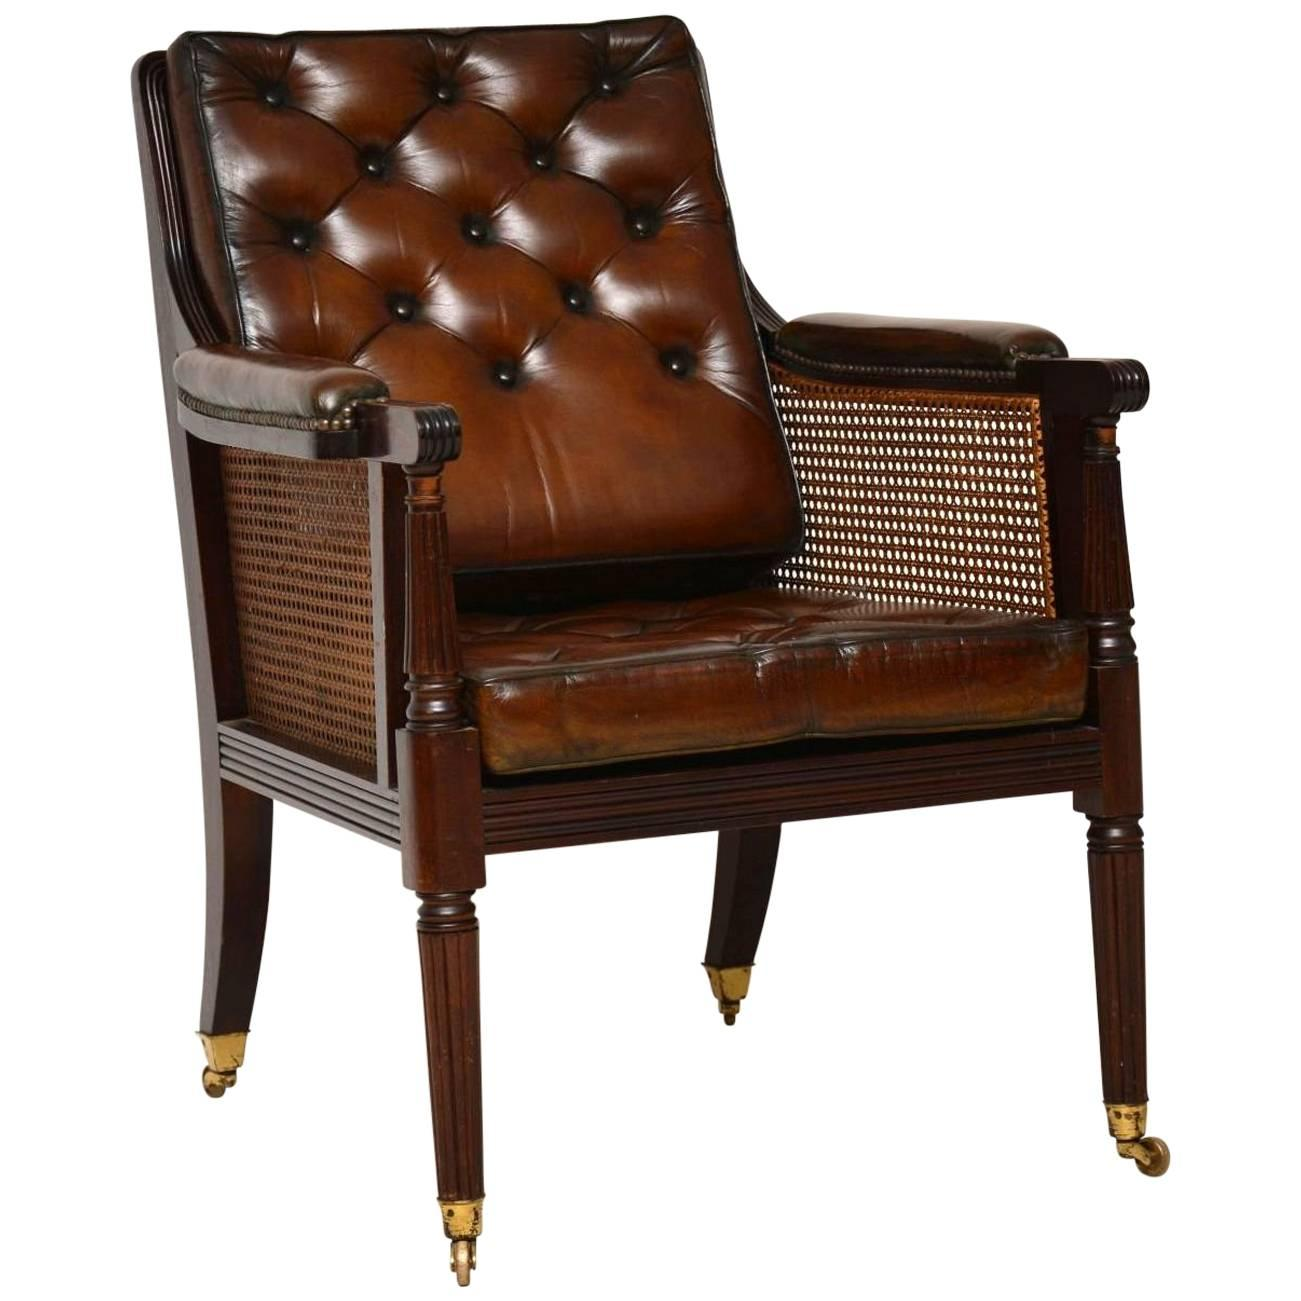 Charmant Antique Leather And Caned Mahogany Armchair For Sale